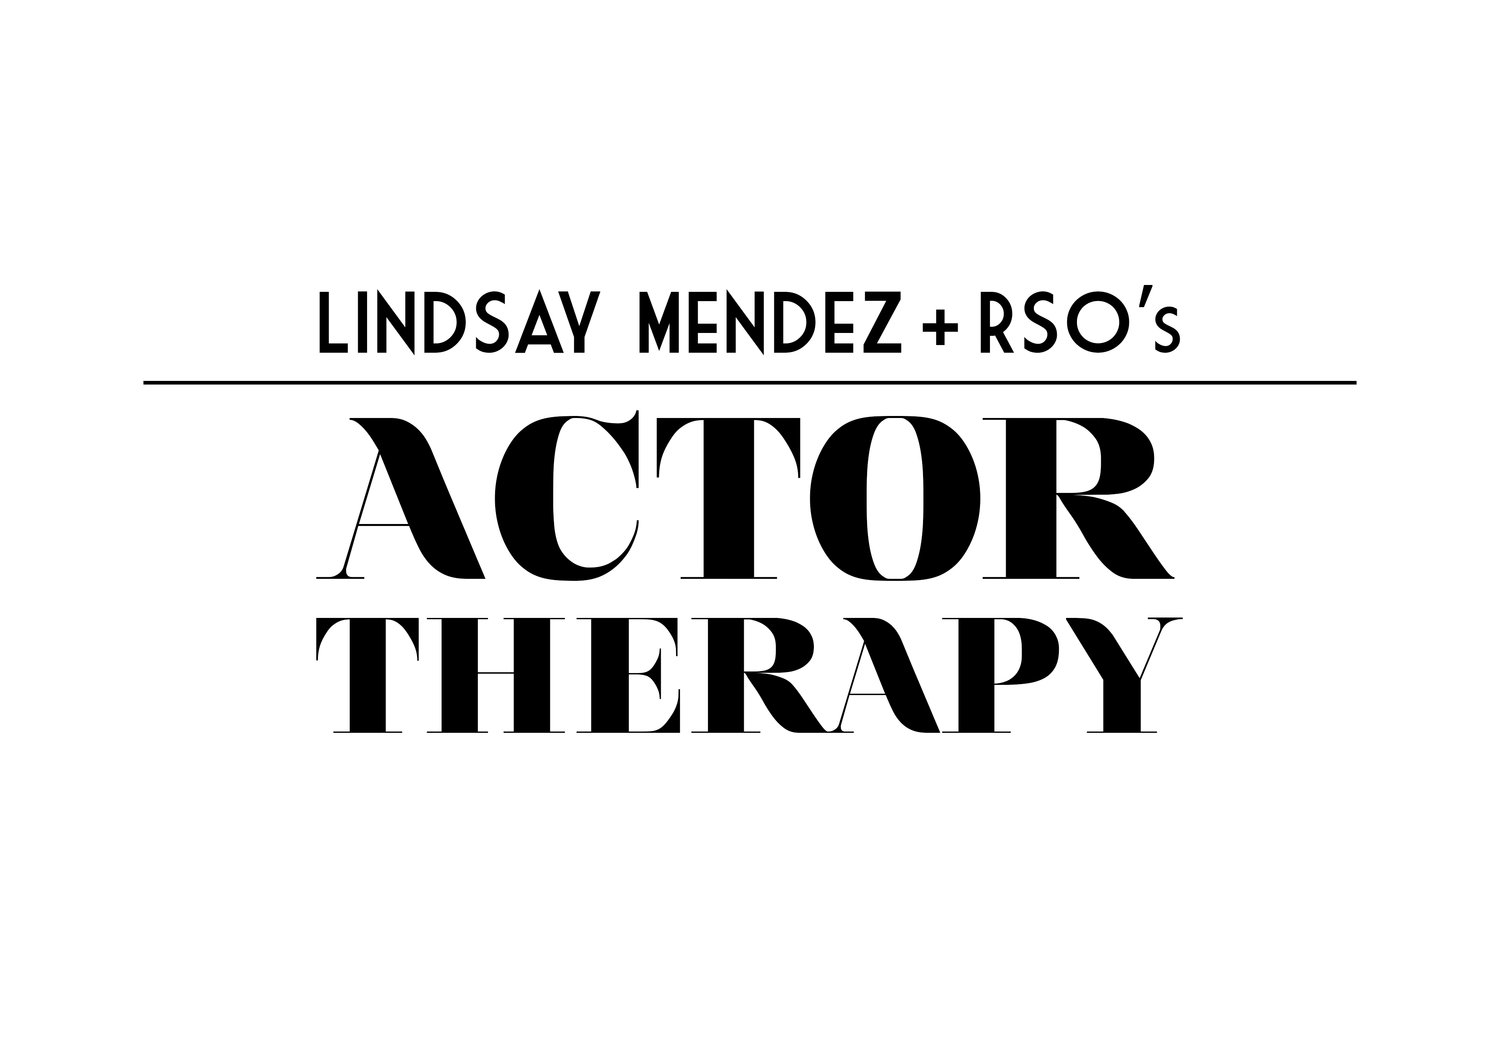 Actor Therapy